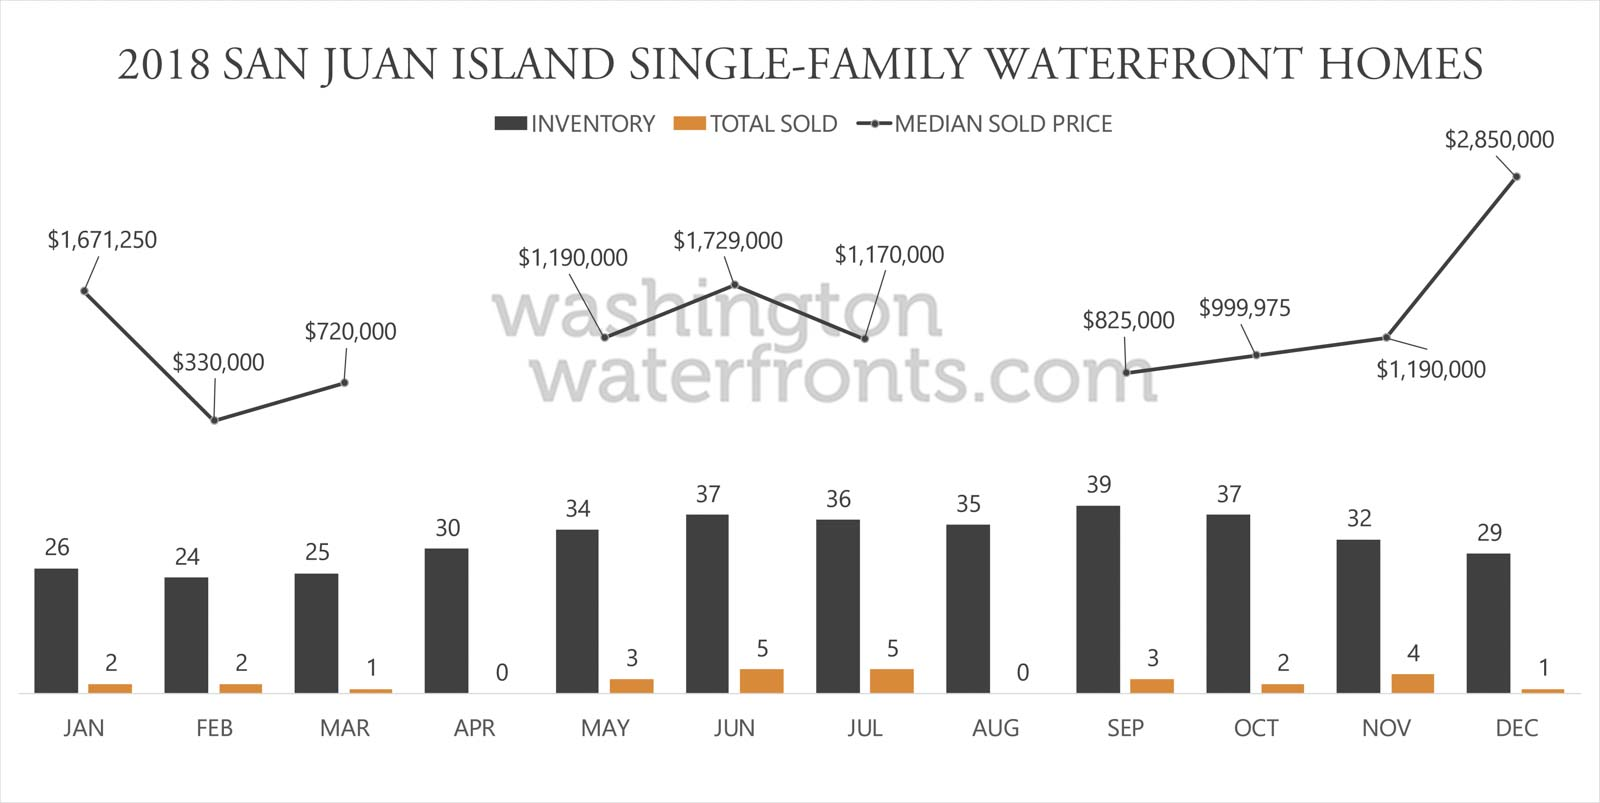 San Juan Island Waterfront Inventory